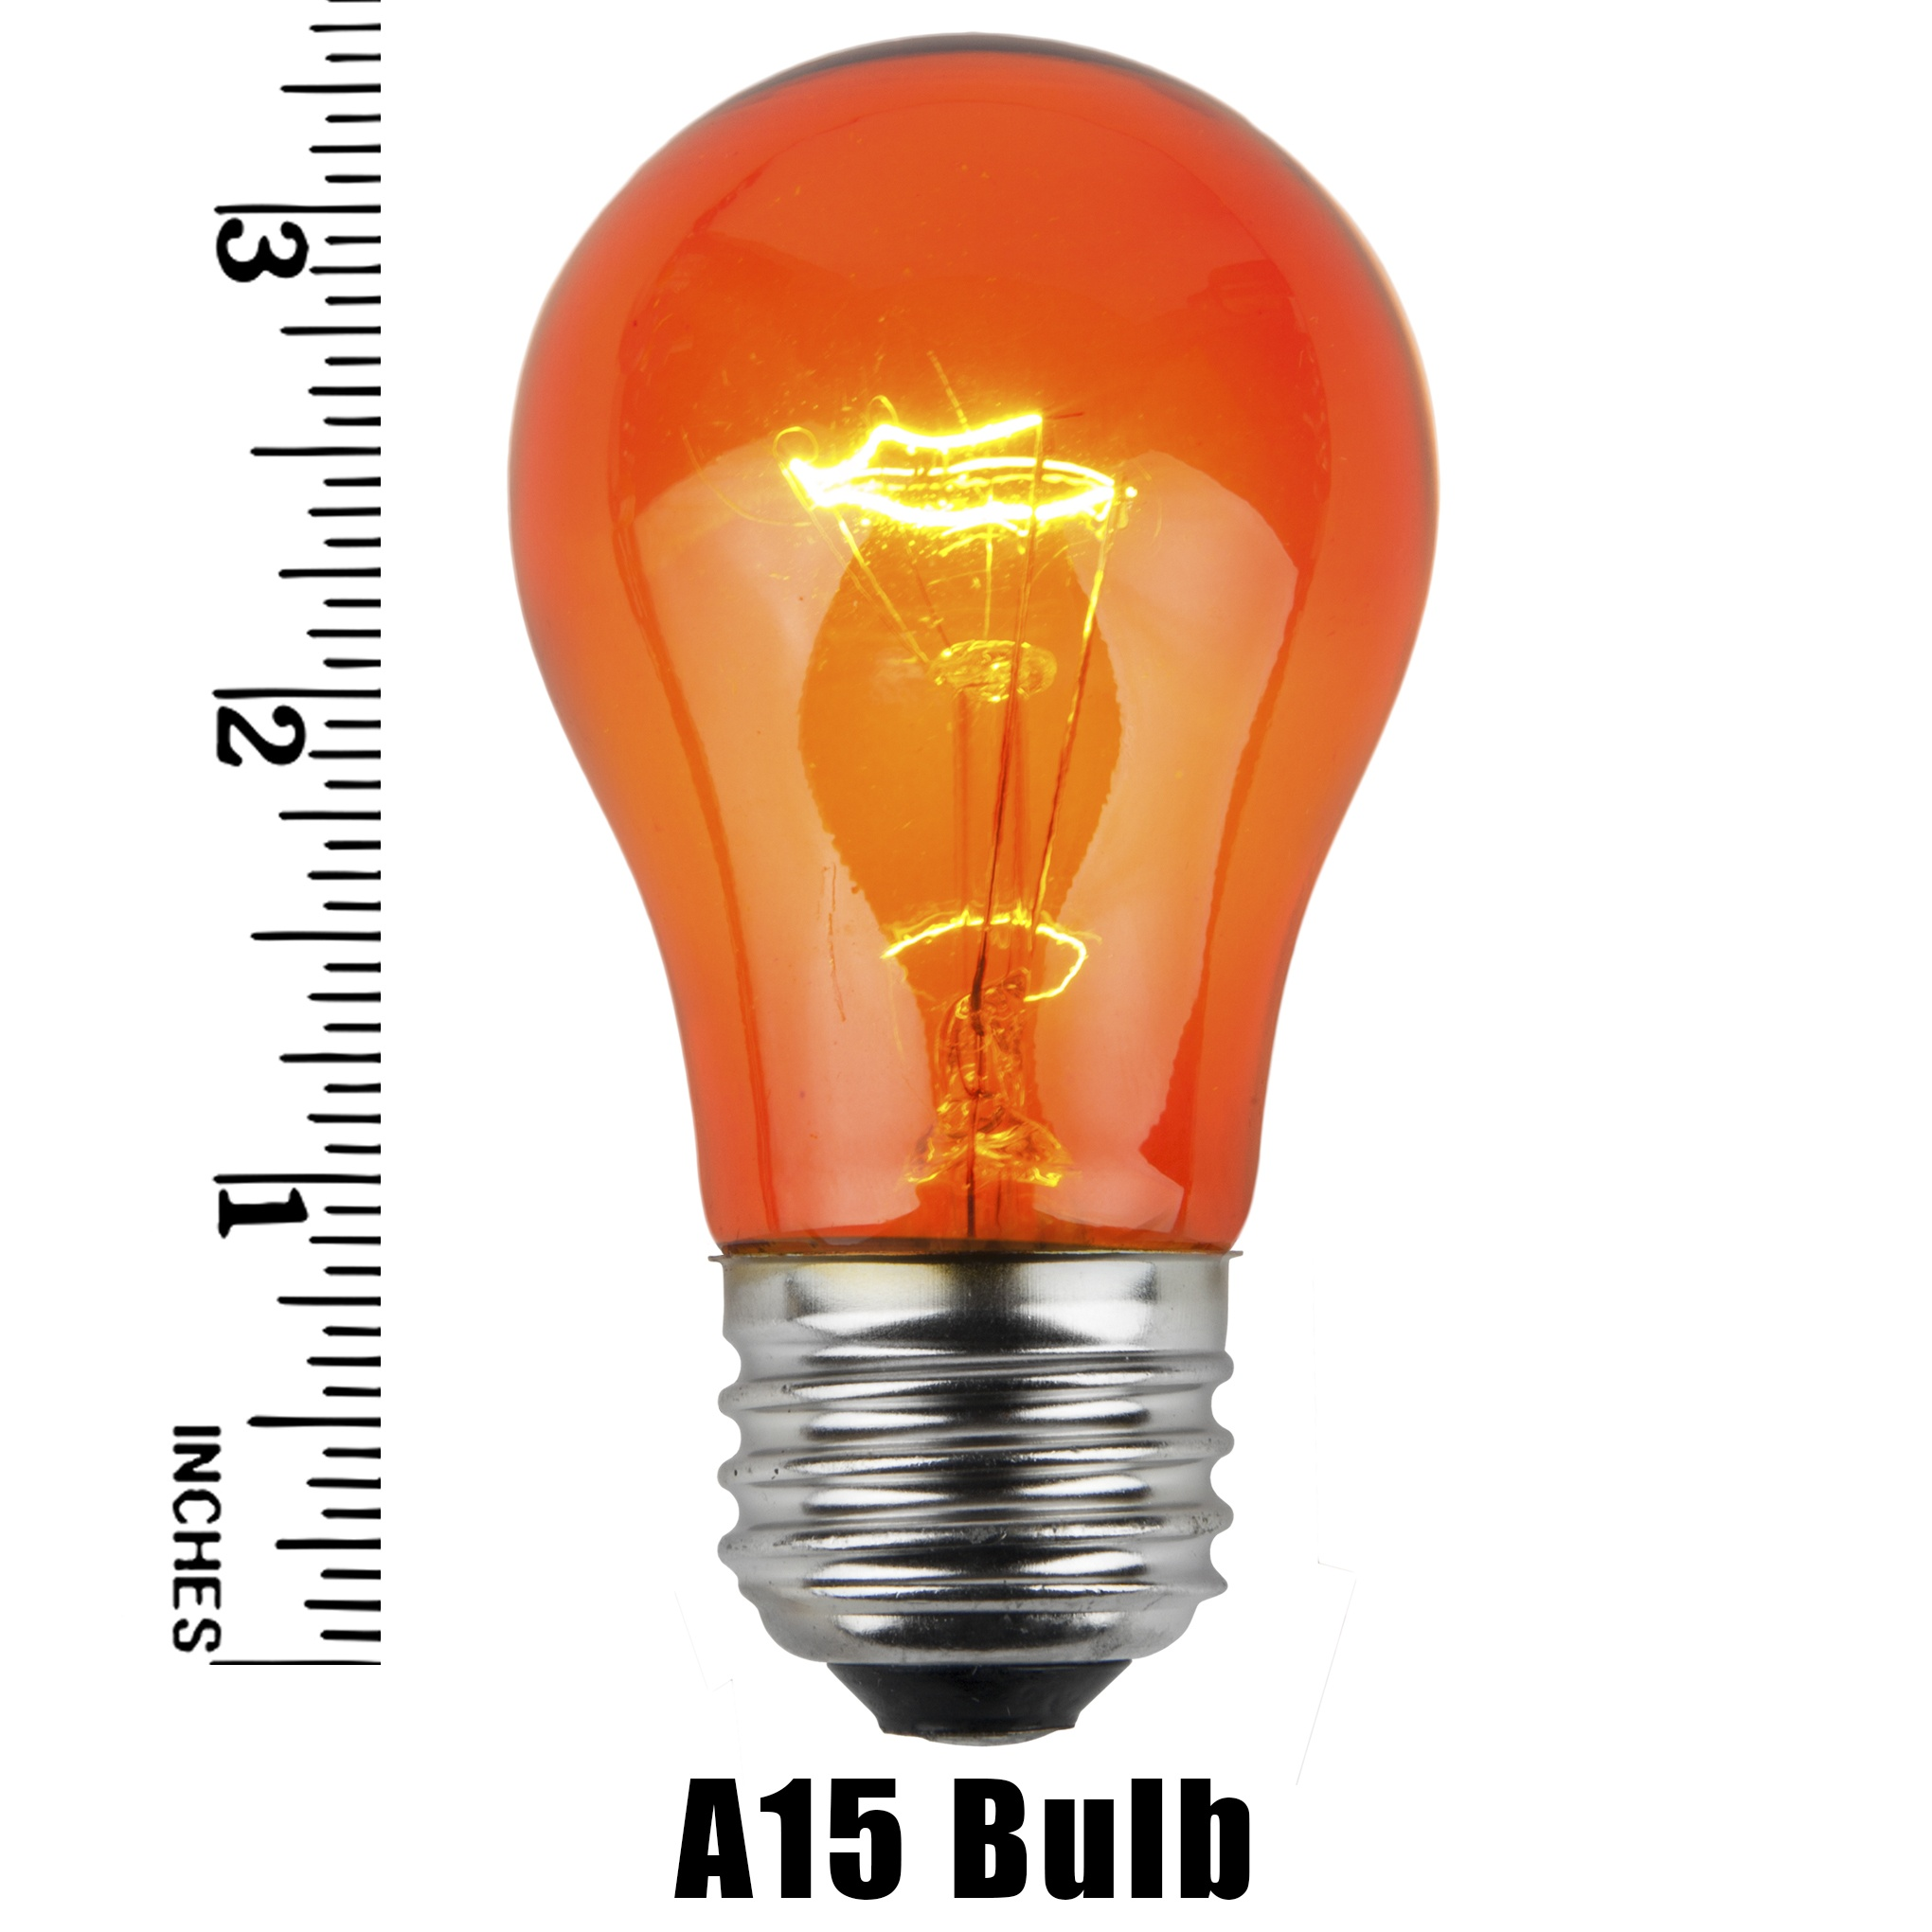 A15 Amber Transparent Incandescent Bulb Measurement